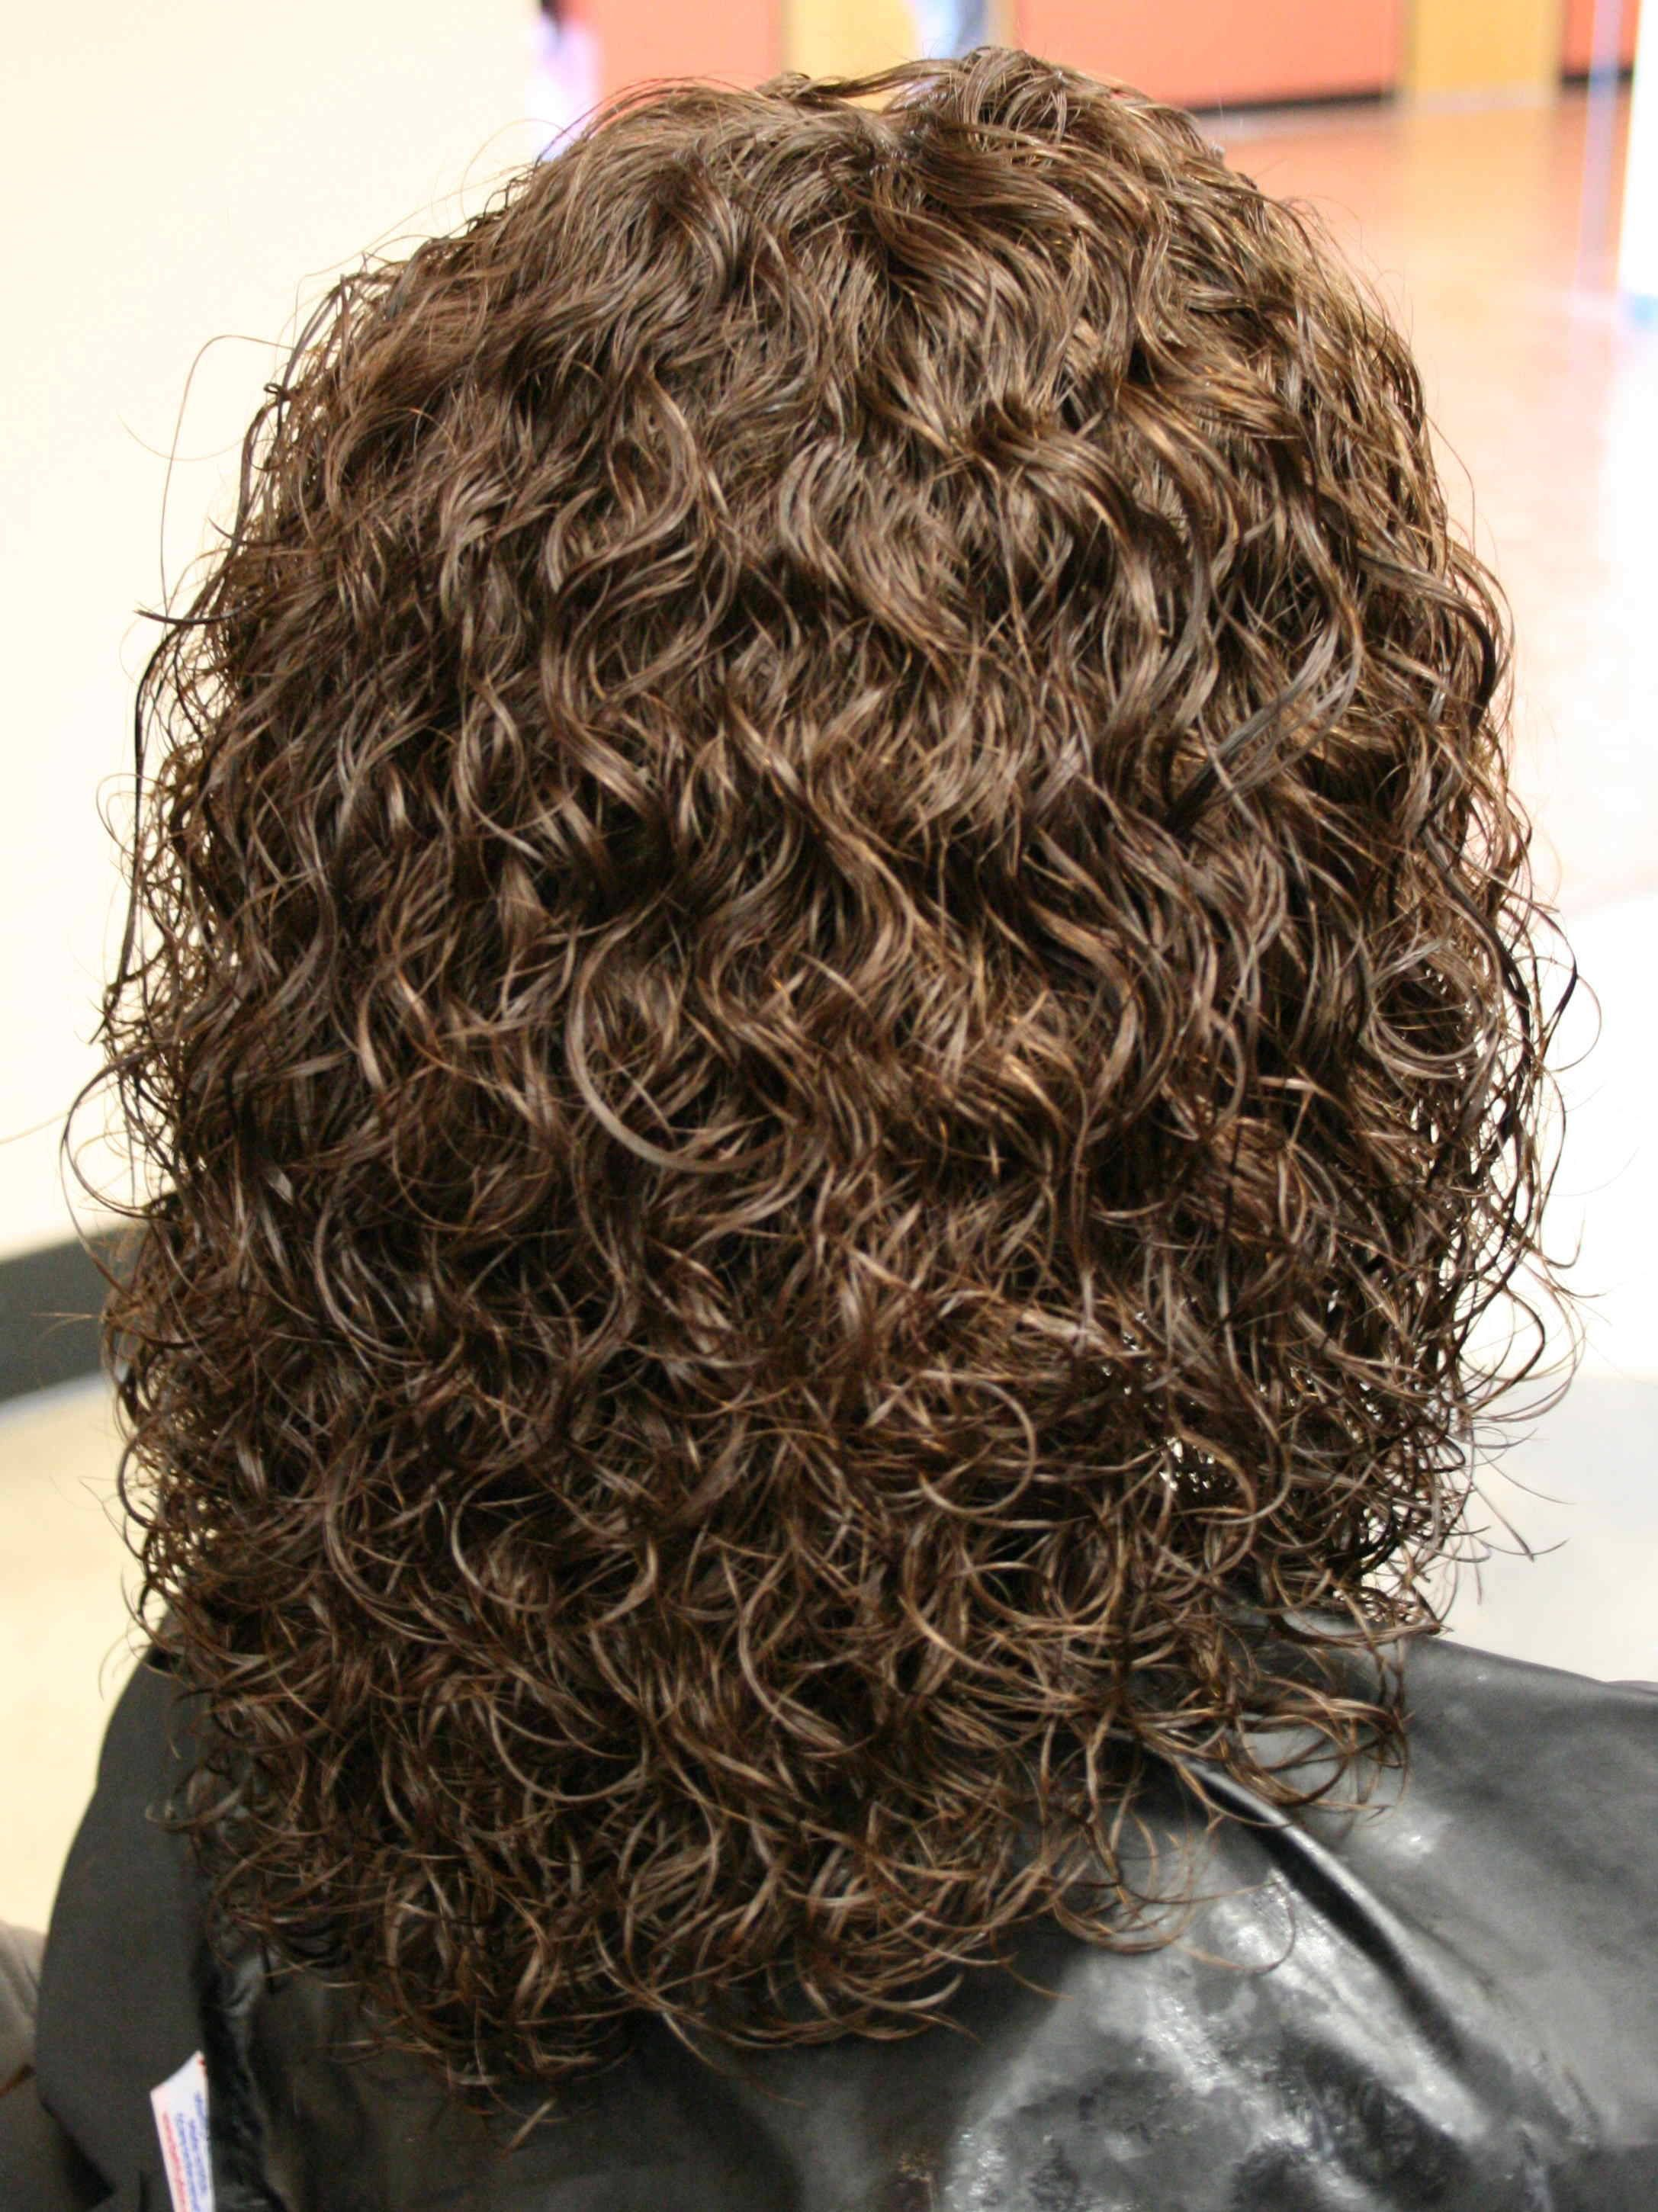 Hair perm types and tips for getting a killer perm all in this